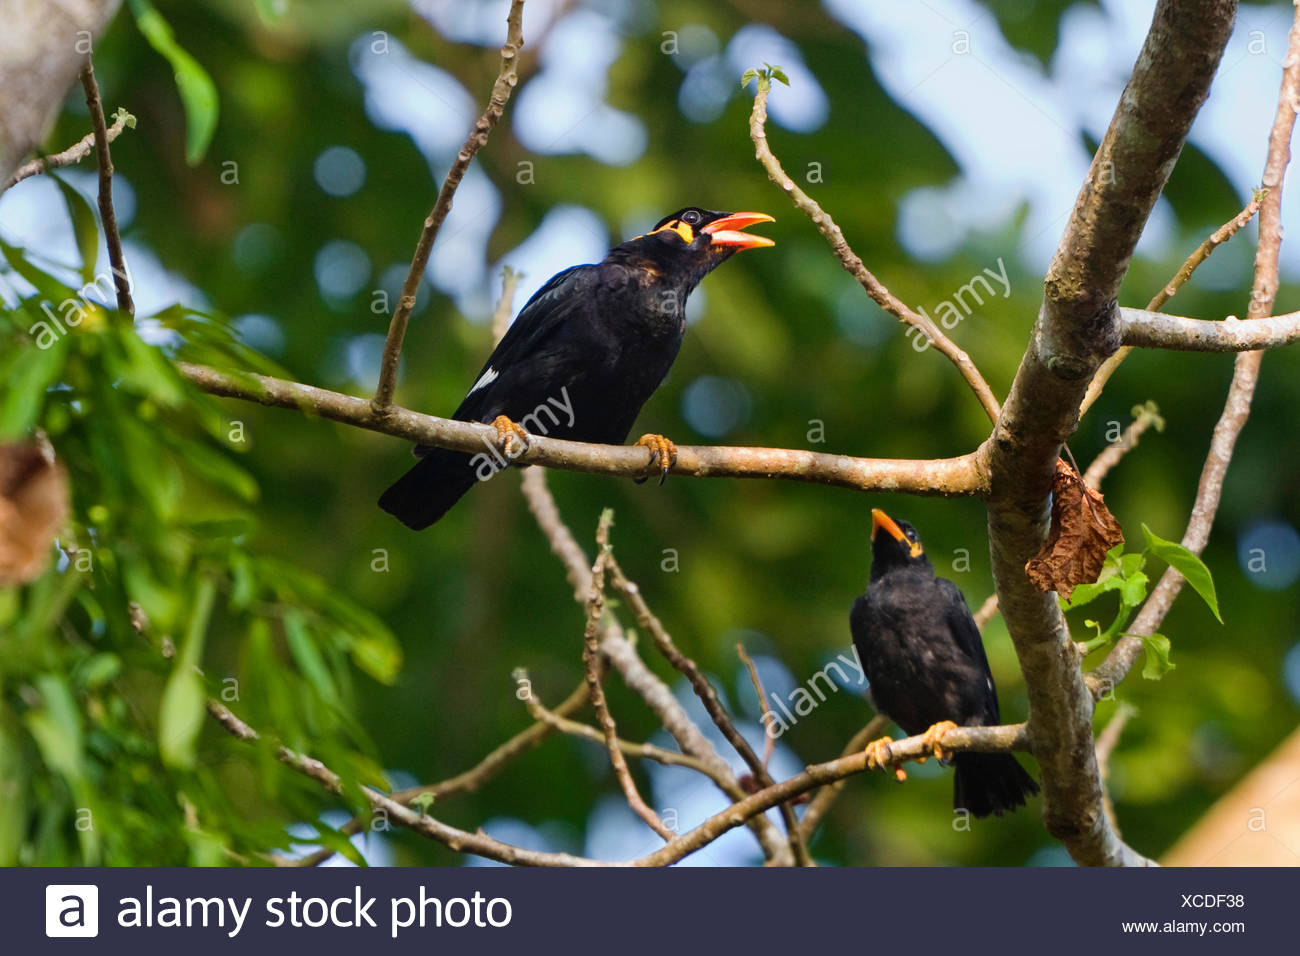 southern grackle (Gracula religiosa), sitting on a branch, India, Andaman Islands - Stock Image